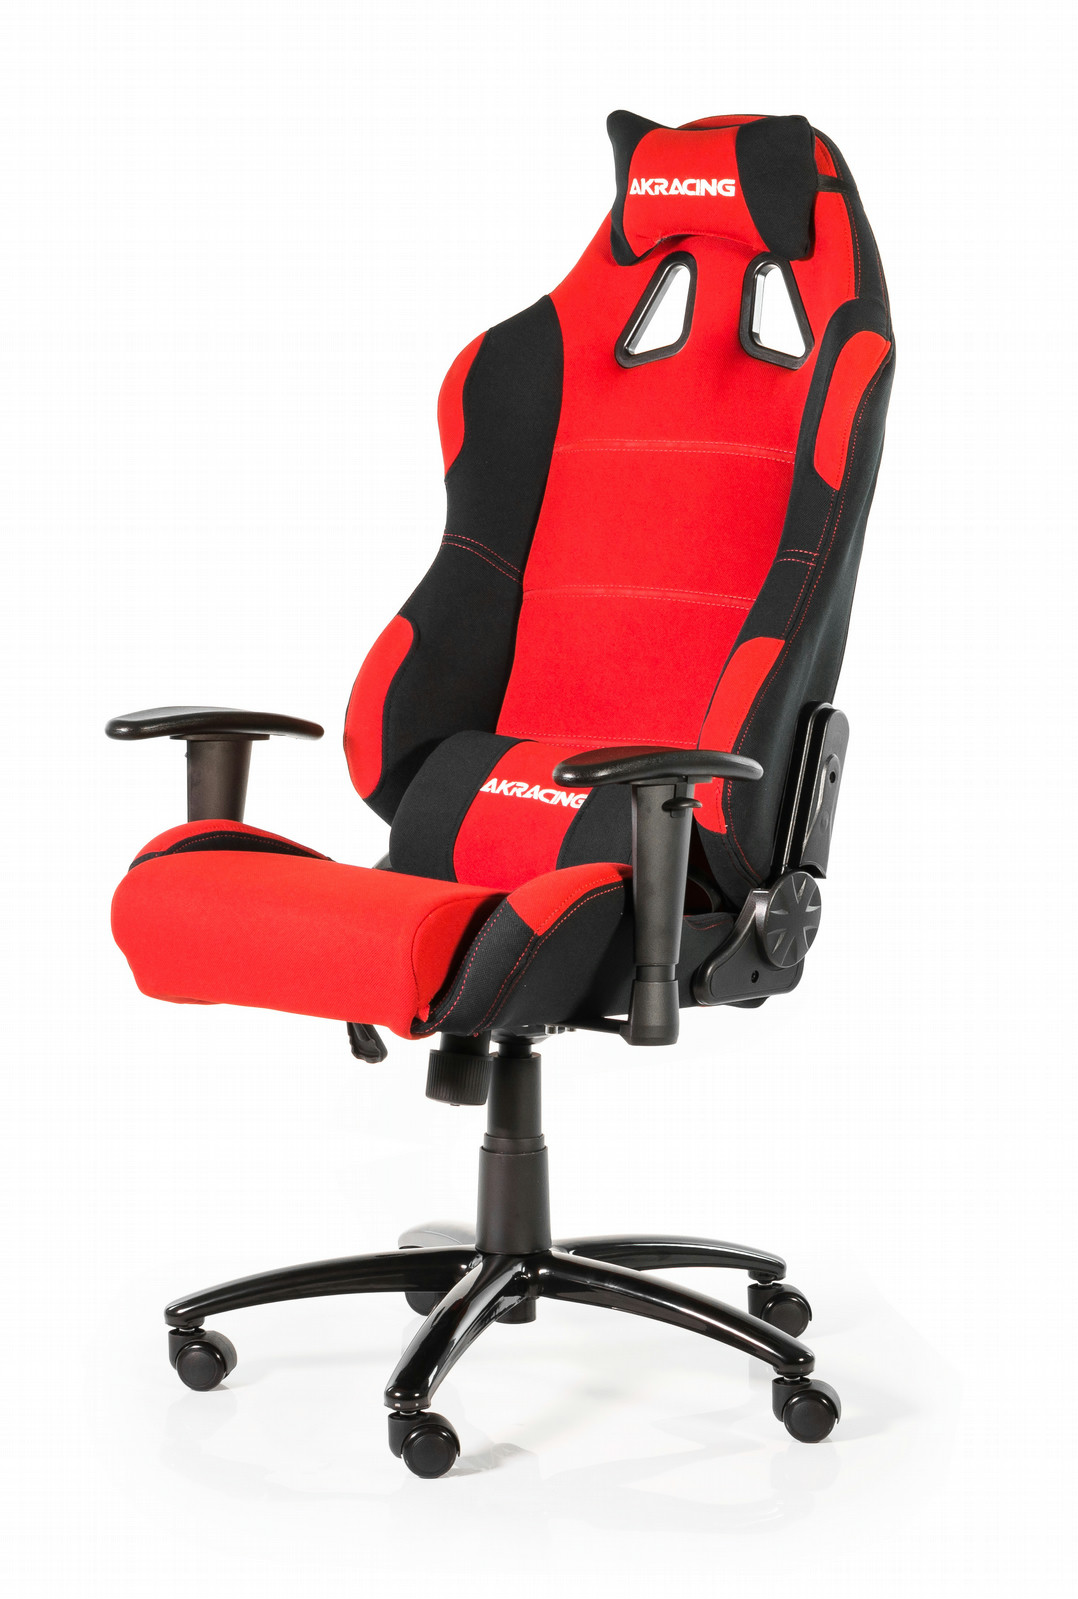 black computer chair collapsible rocking ᐈ akracing prime gaming red best price technical office